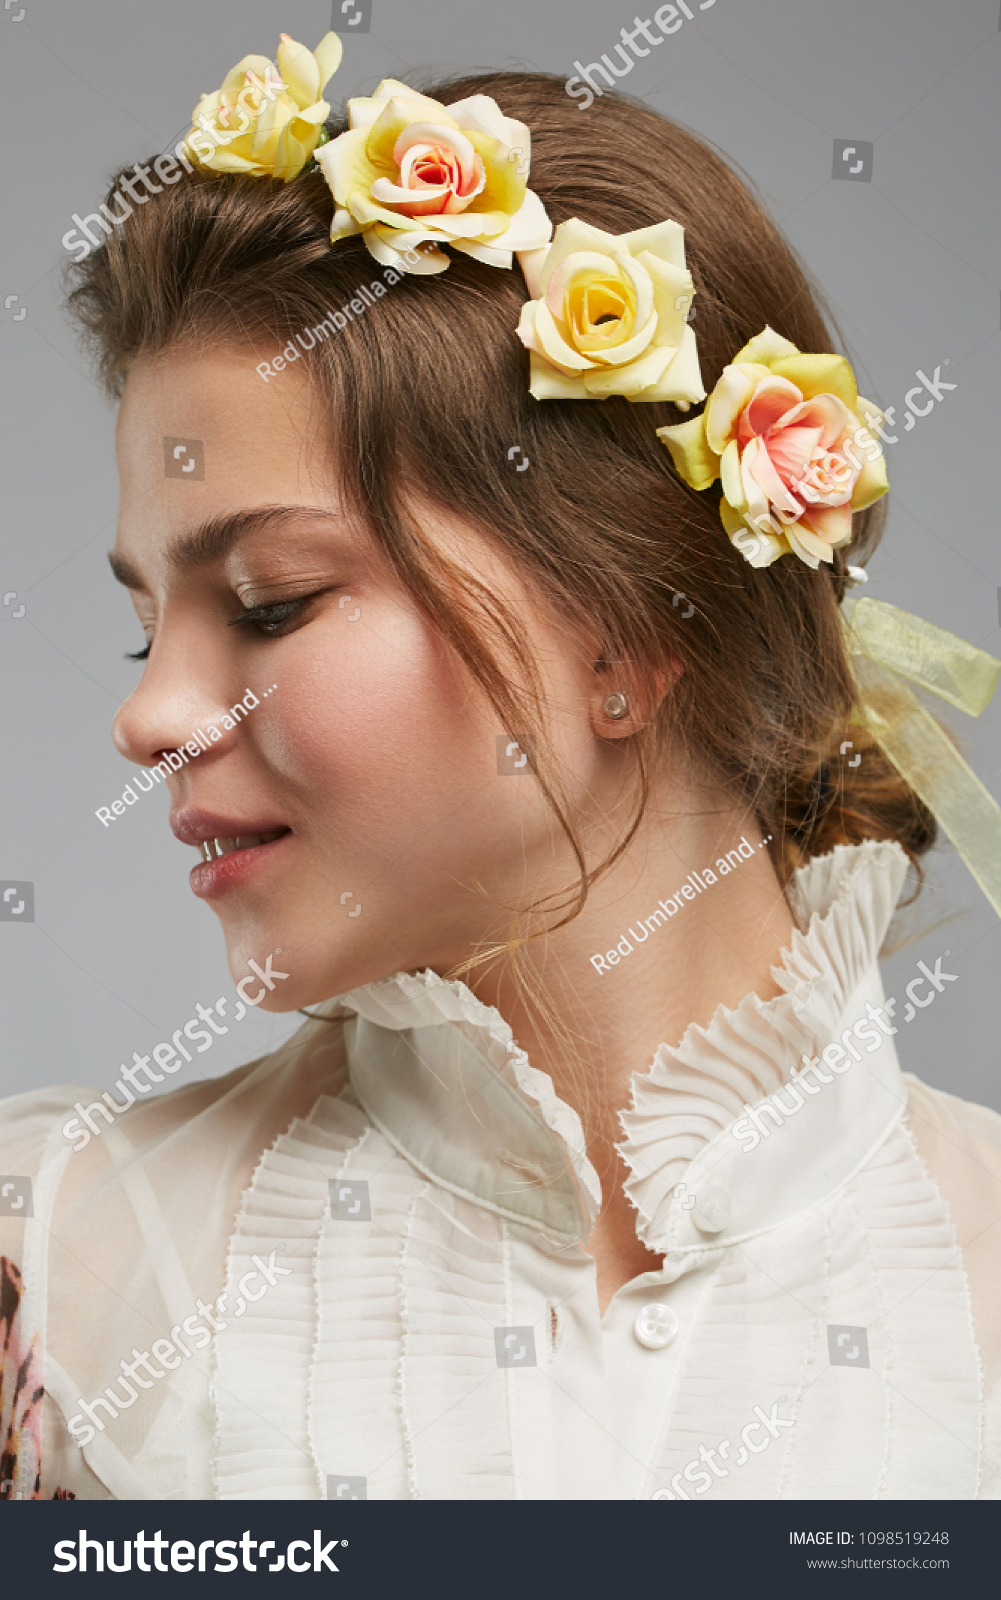 Profile portrait charming young lady bohemian stock photo edit now profile portrait of a charming young lady with a bohemian flower crown in a white izmirmasajfo